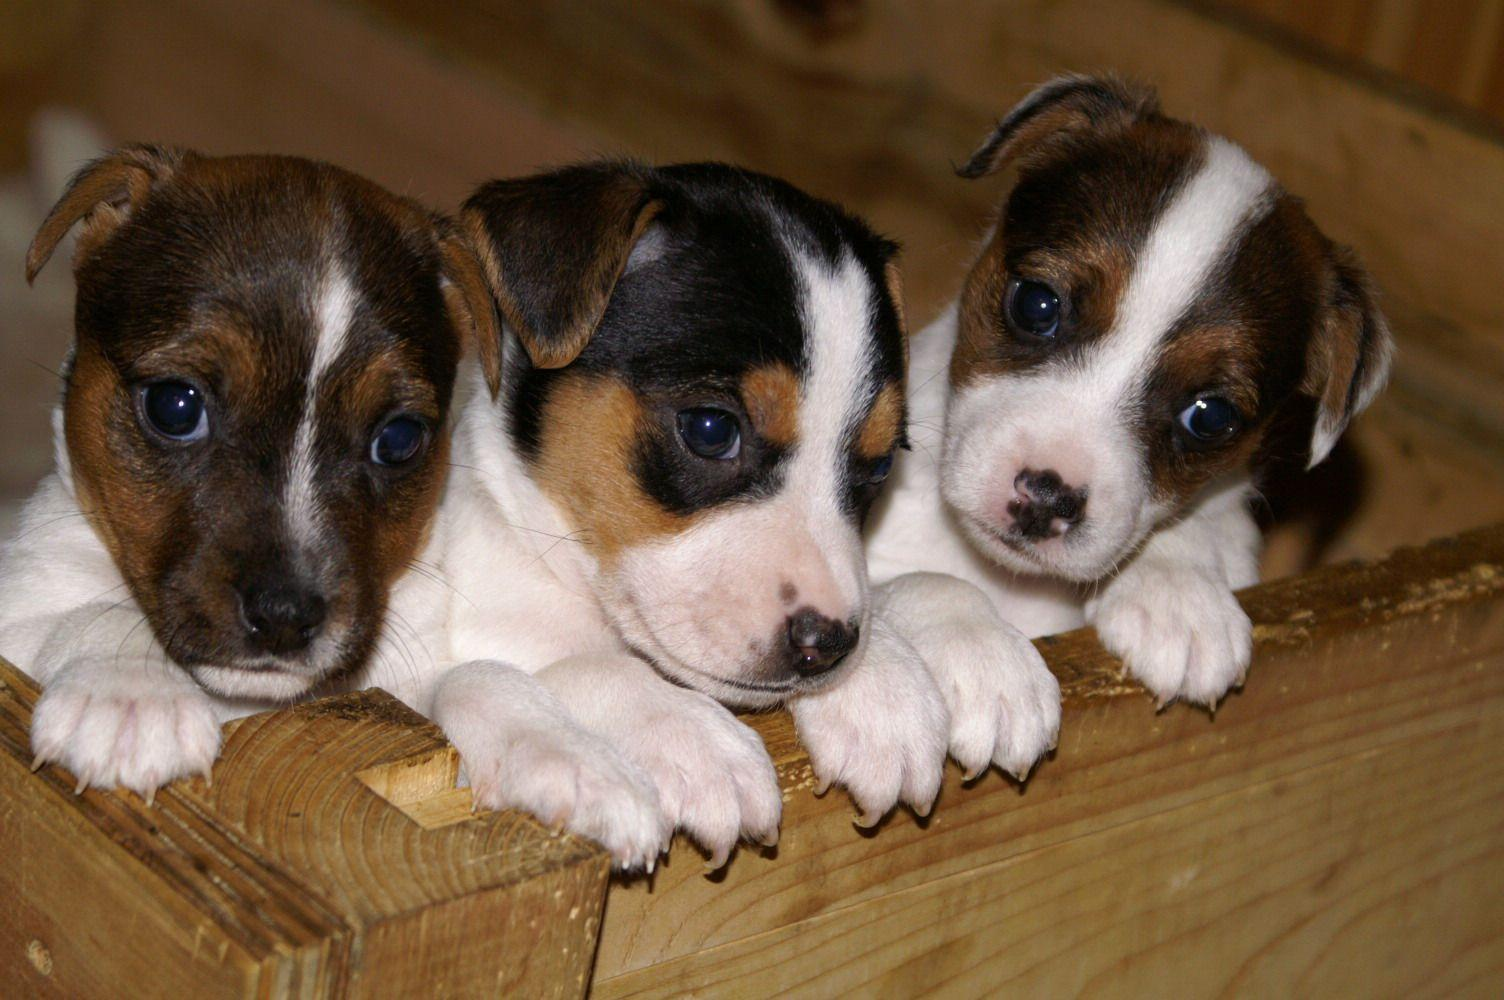 Jack Russell Terrier Wallpapers - Wallpaper Cave Jack Russell Terrier Wallpaper